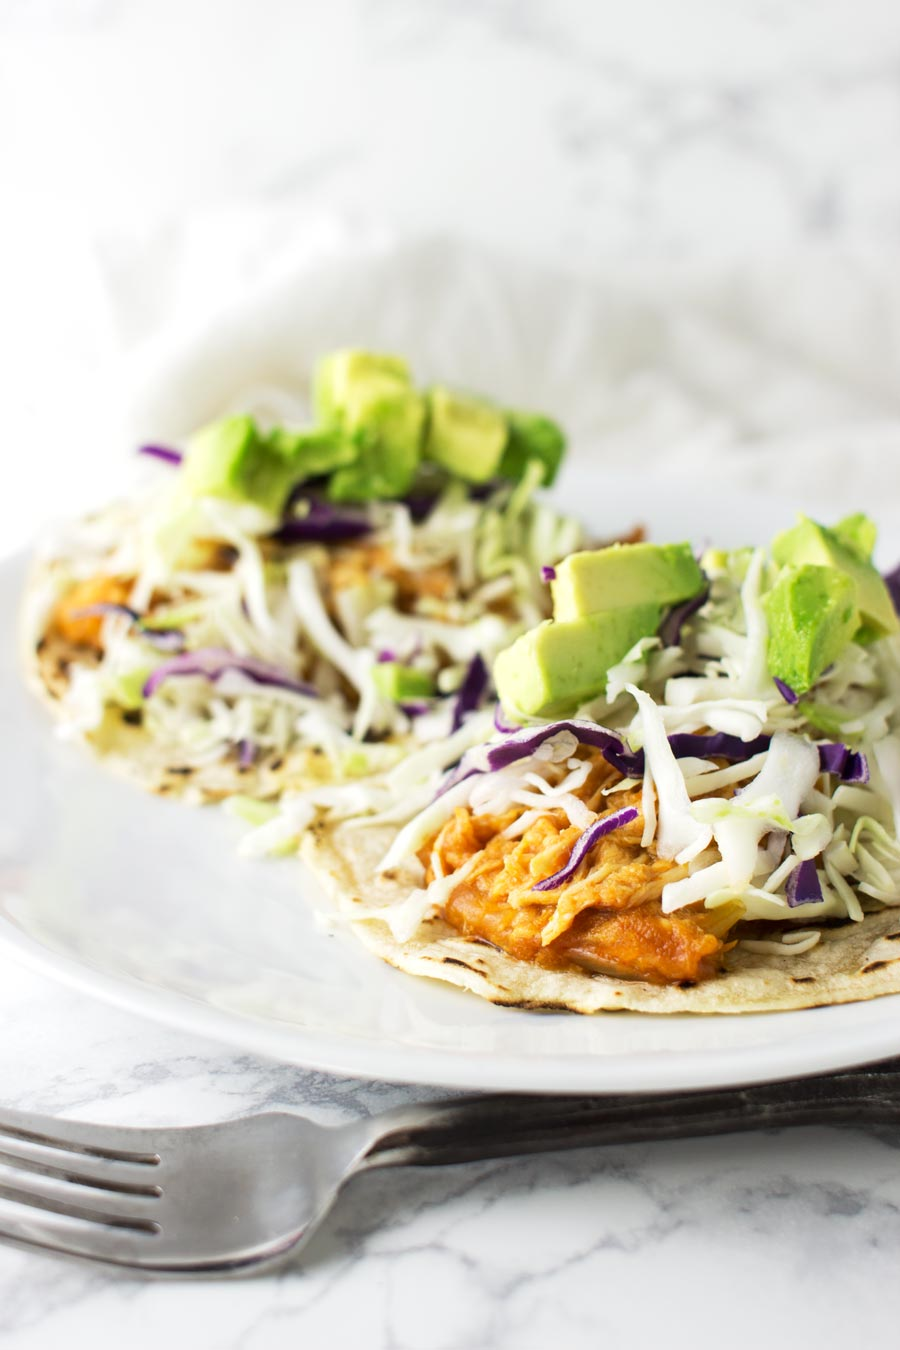 Slow-Cooked Chicken Tacos recipe from acleanplate.com #aip #paleo #autoimmuneprotocol